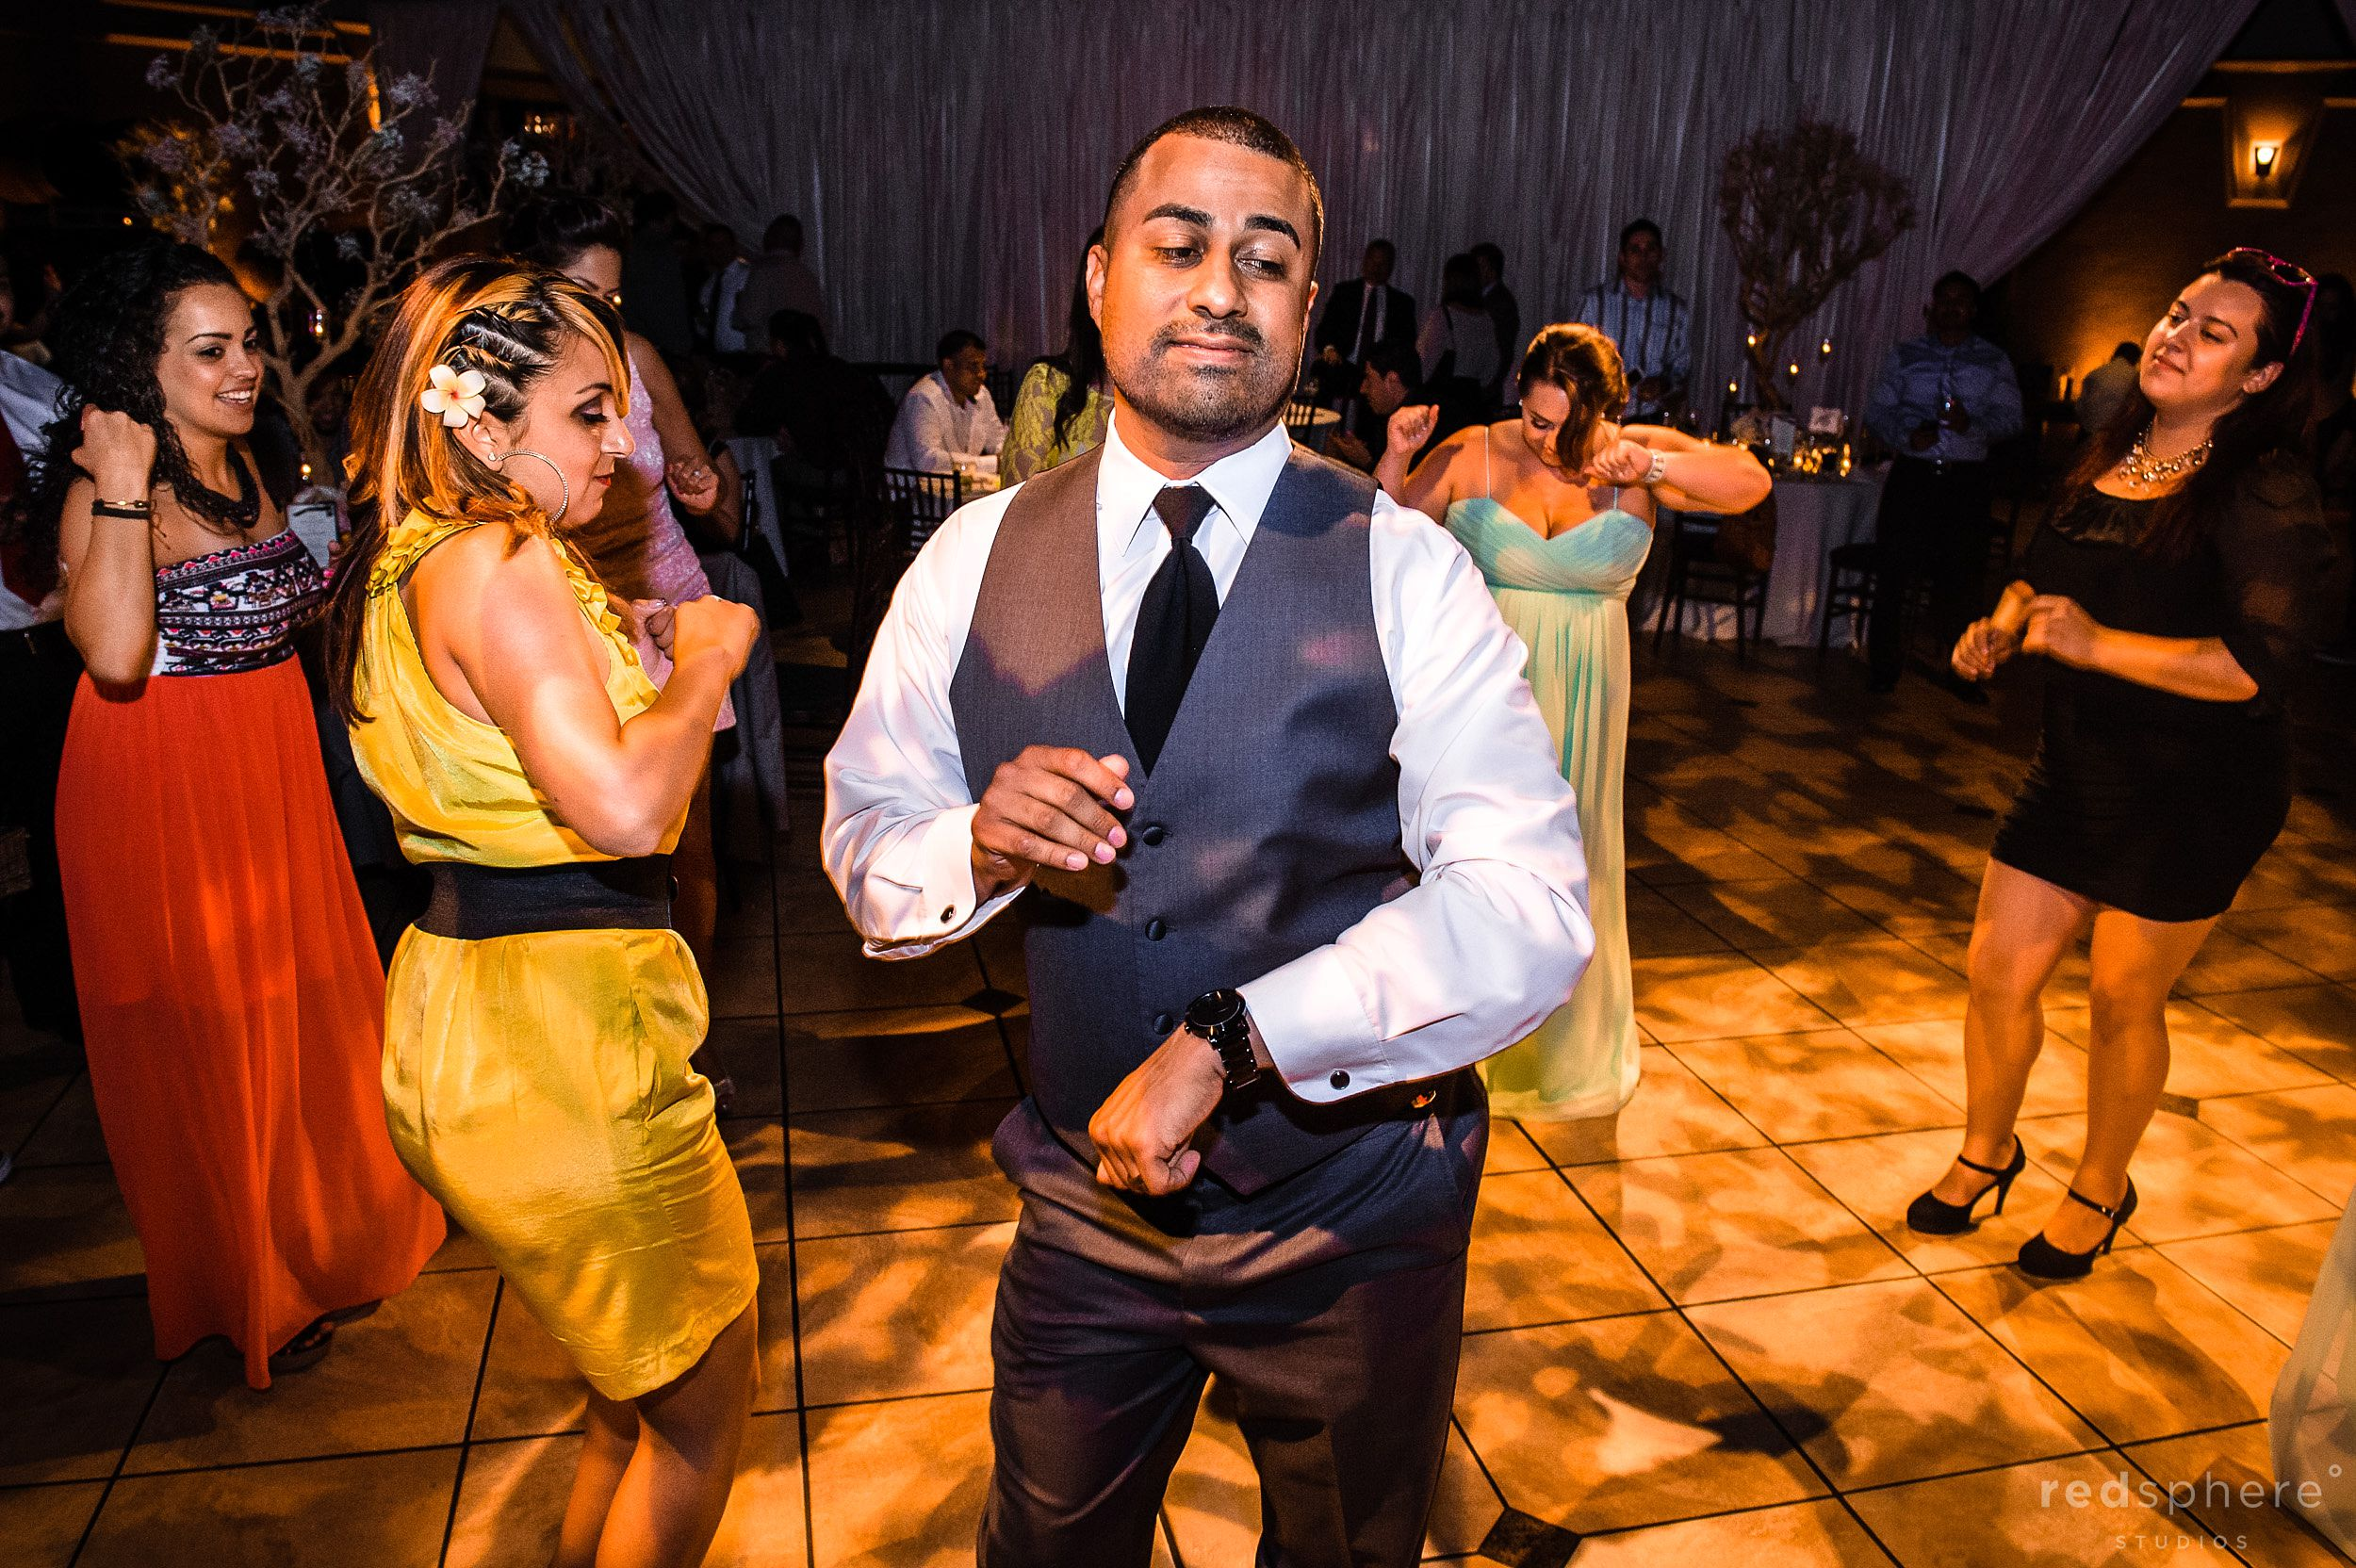 Groom Dancing to the Music at Palm Event Center Wedding Reception